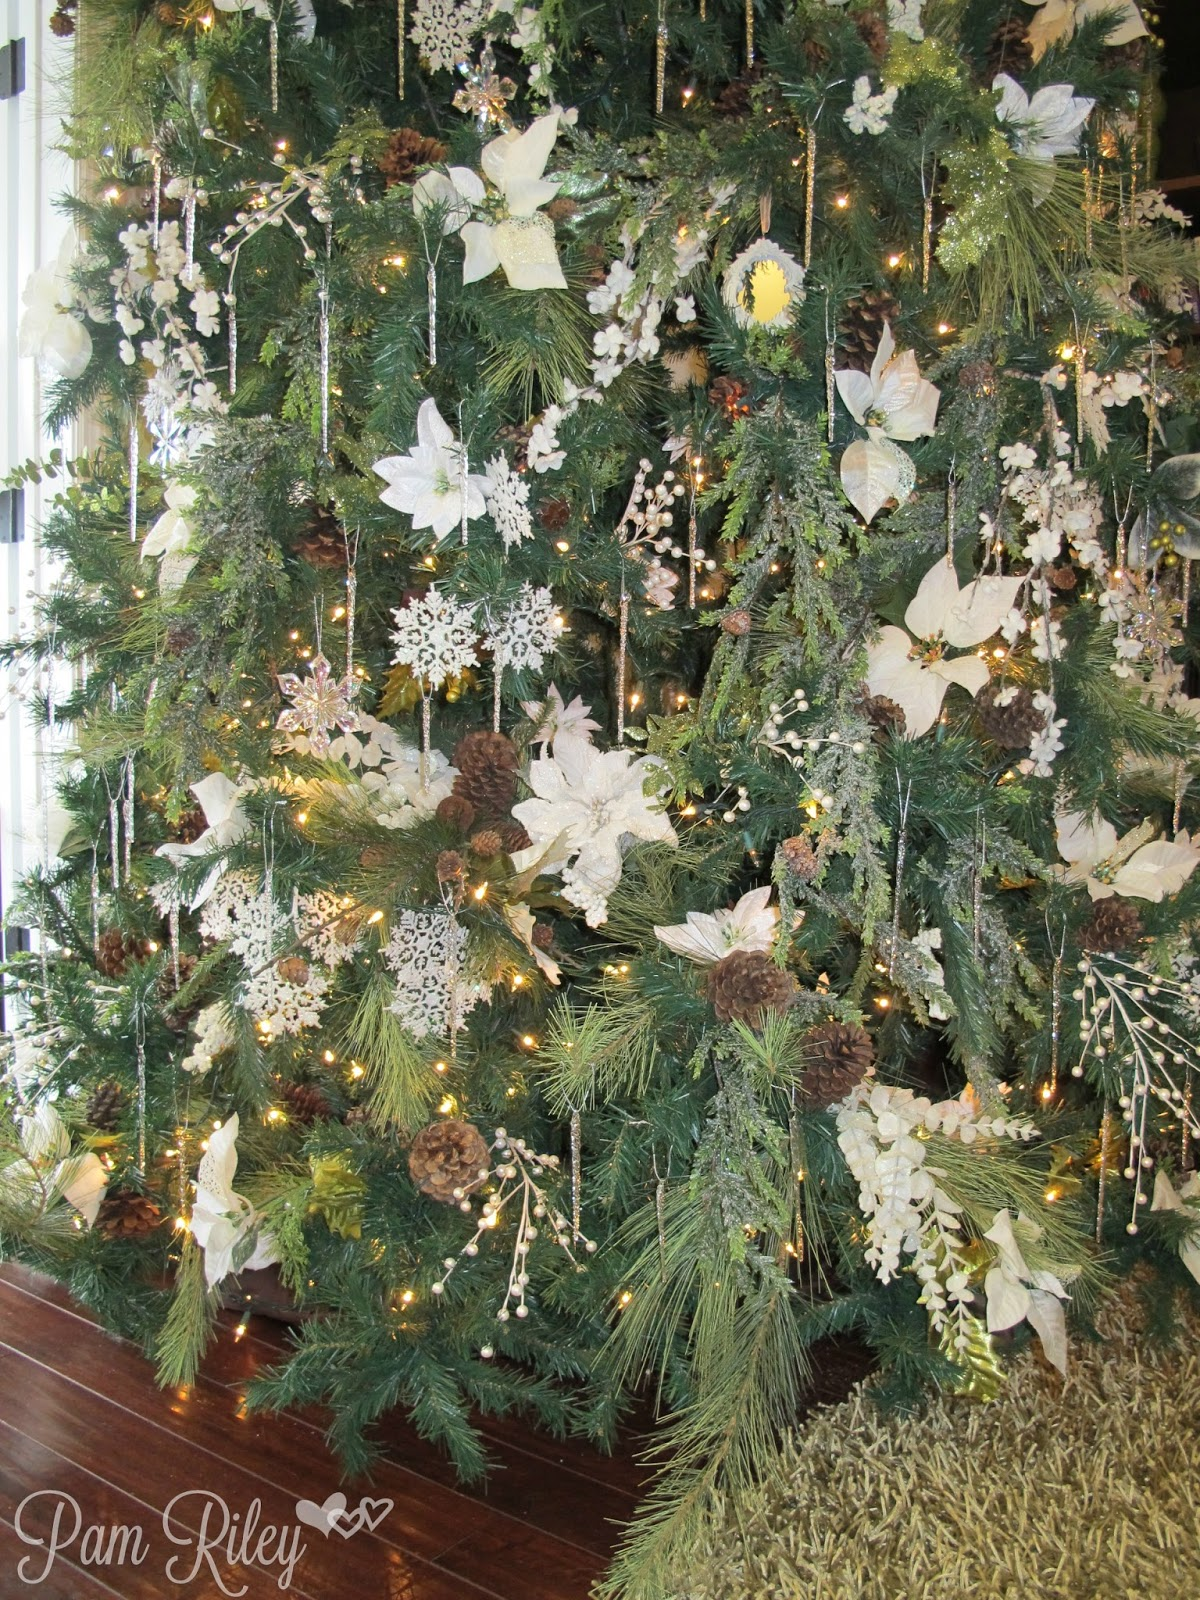 Different types of christmas trees pictures - Final Best Tall Tree Close Up2015 11 20 02 52 24 Jpg